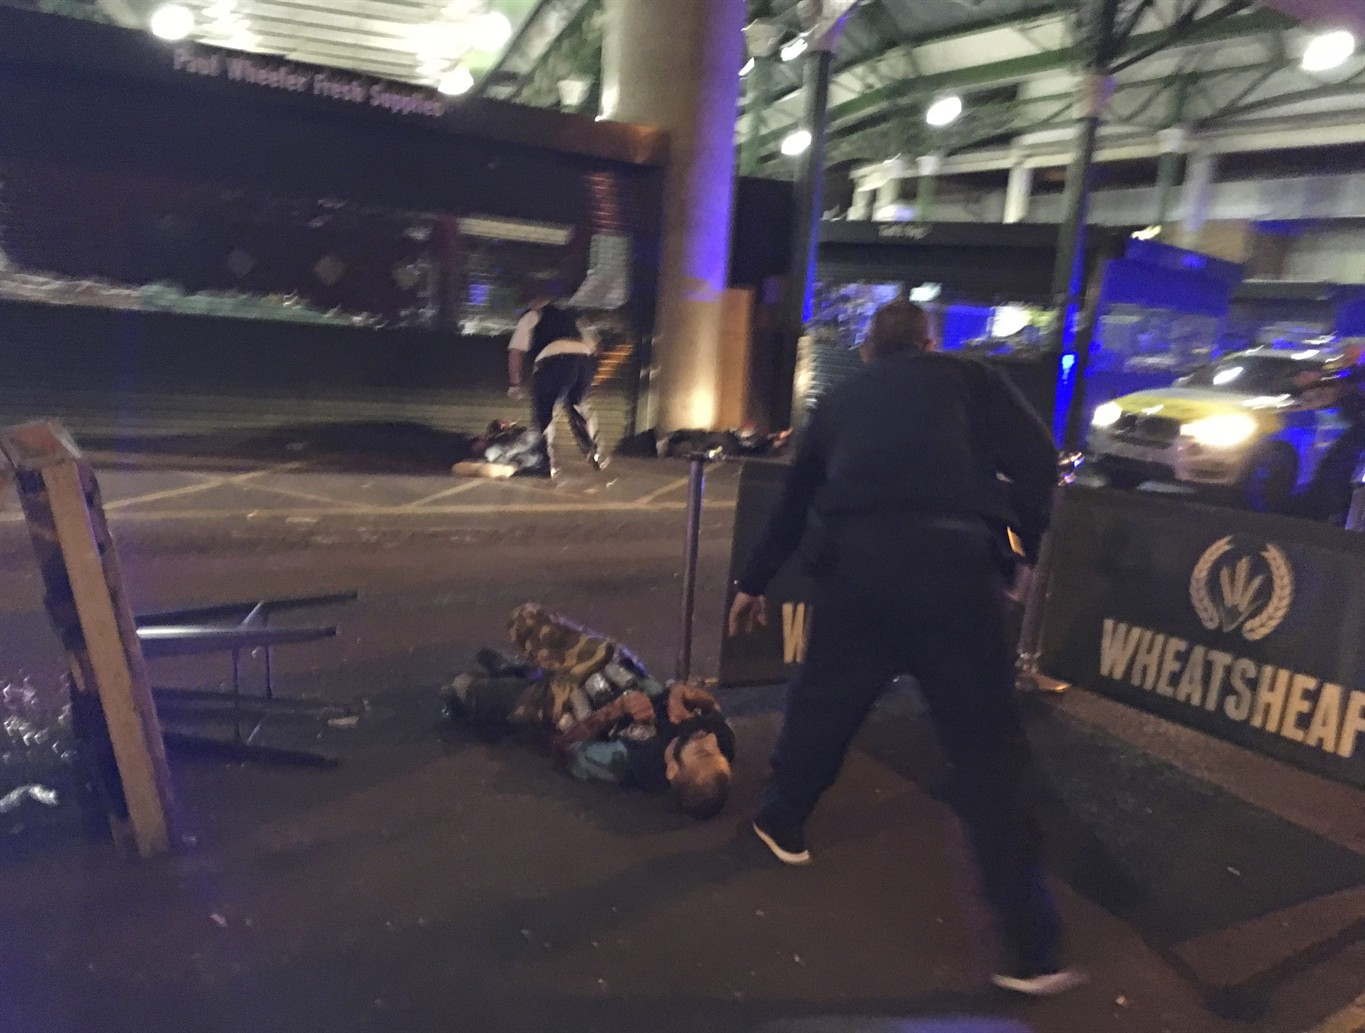 Ten people remain in critical condition after London Bridge attack - Health Authority